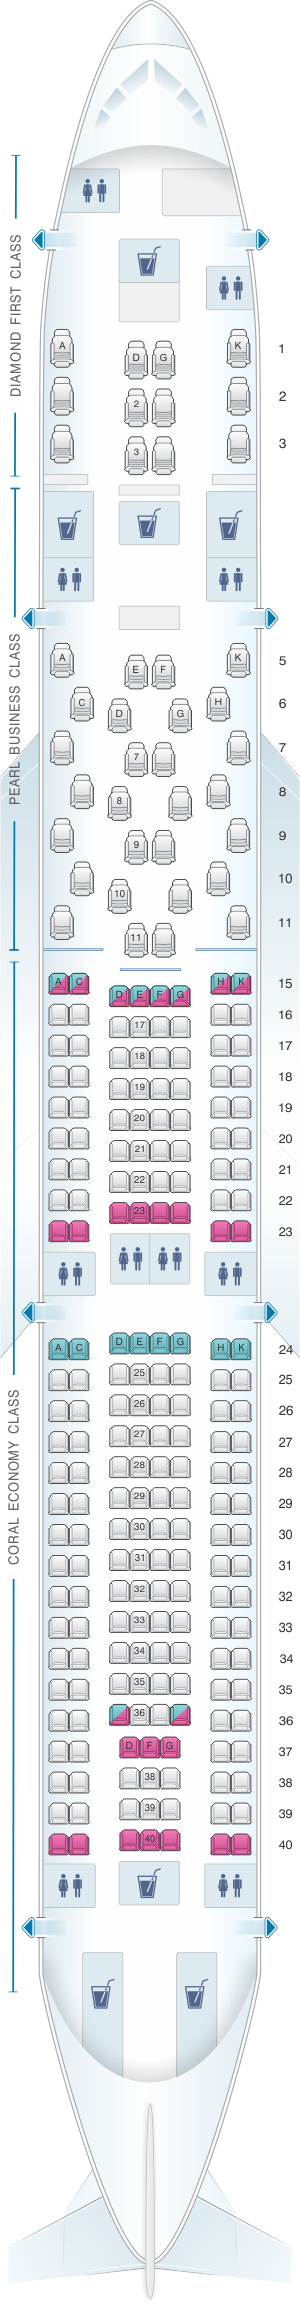 Seat map for Etihad Airways Airbus A340 500